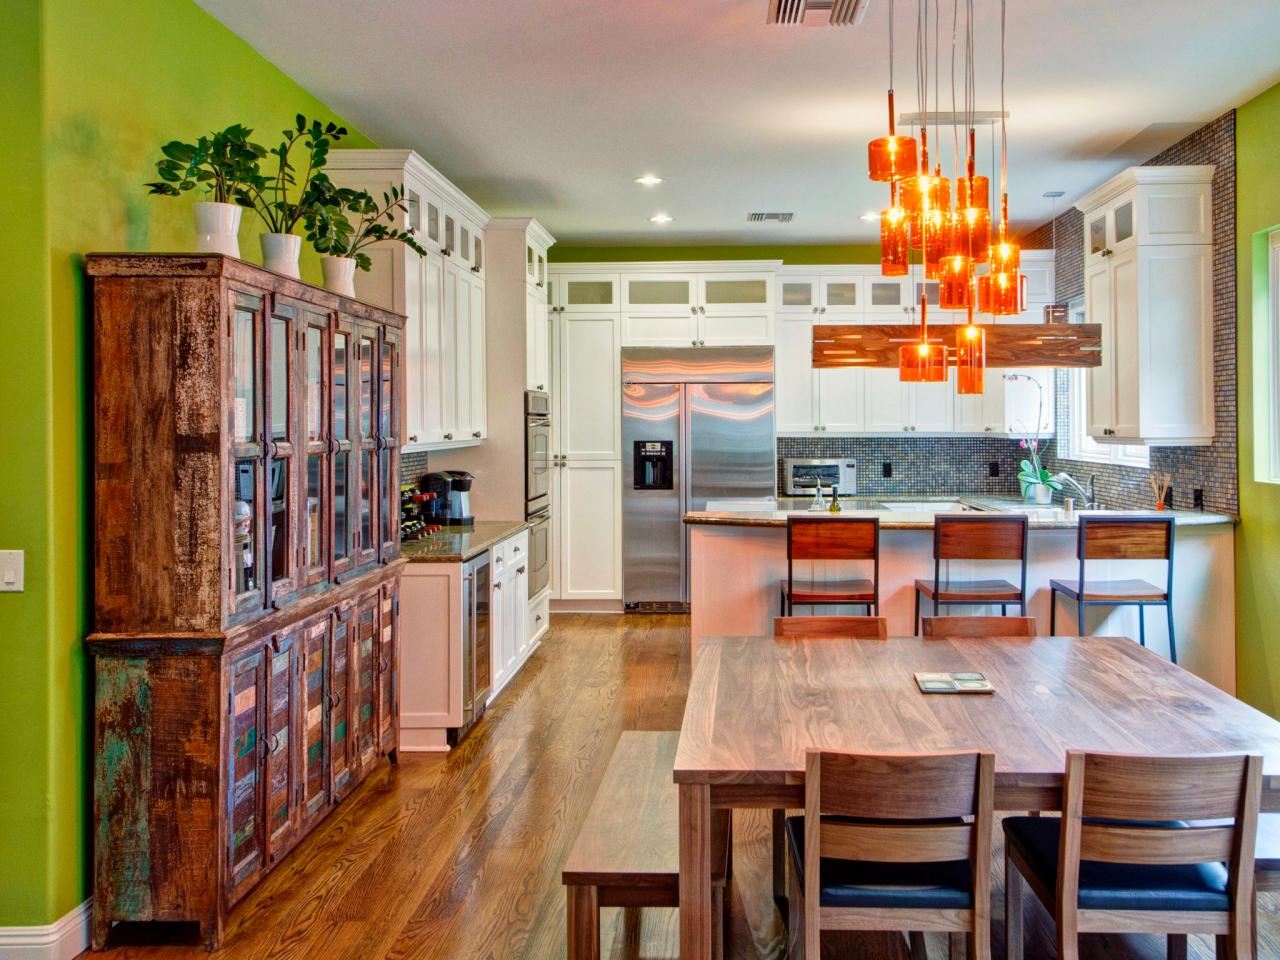 9 Amazing Eclectic Kitchen Design Ideas